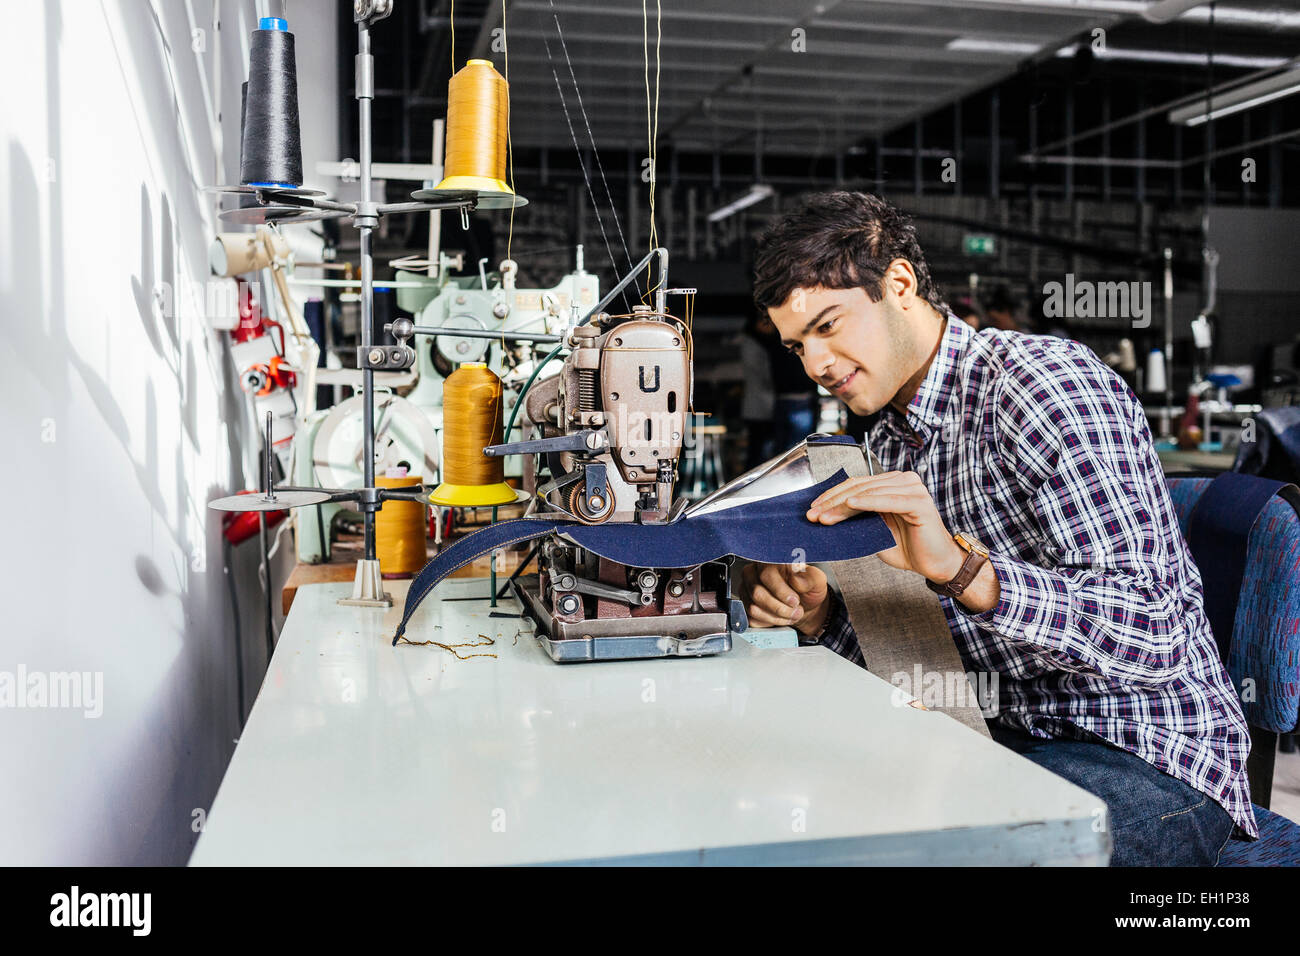 Side view of tailor sewing jeans in factory - Stock Image